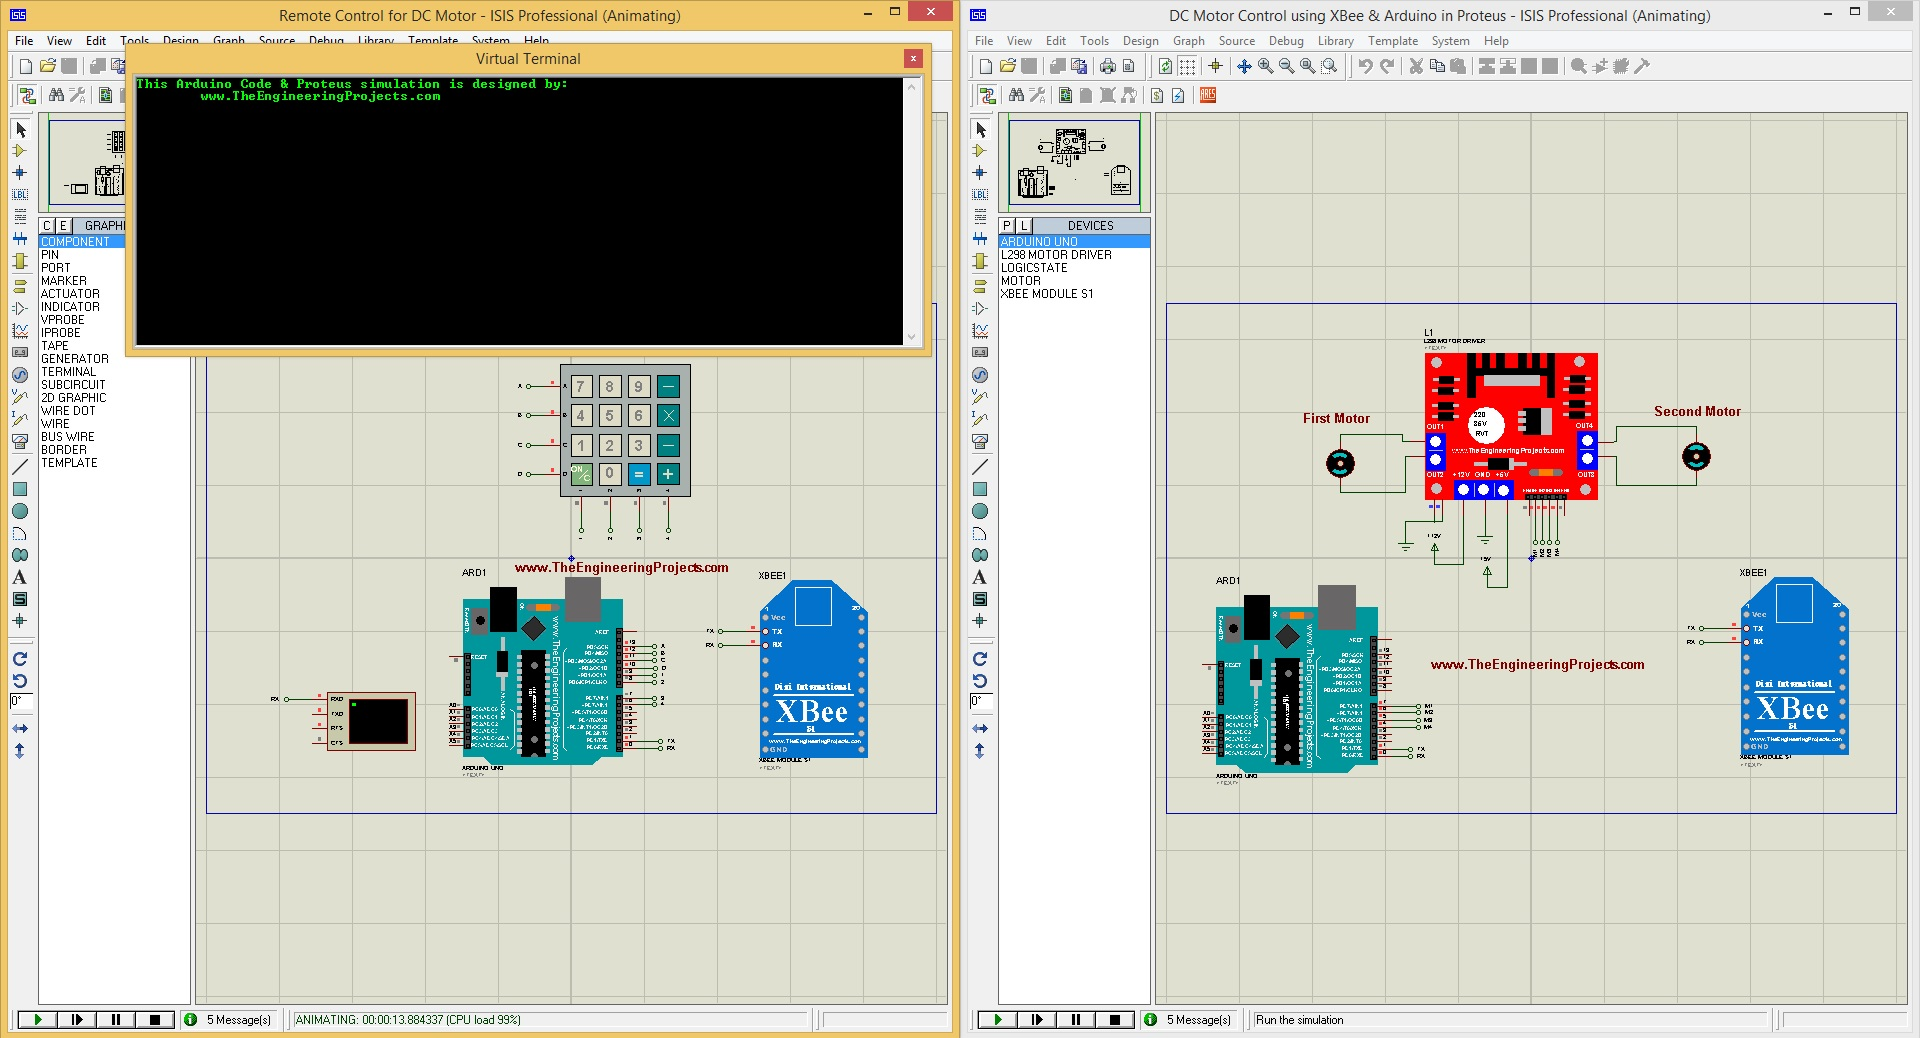 dc motor control, dc motor control using xbee, dc motor in proteus, proteus simulation of dc motor